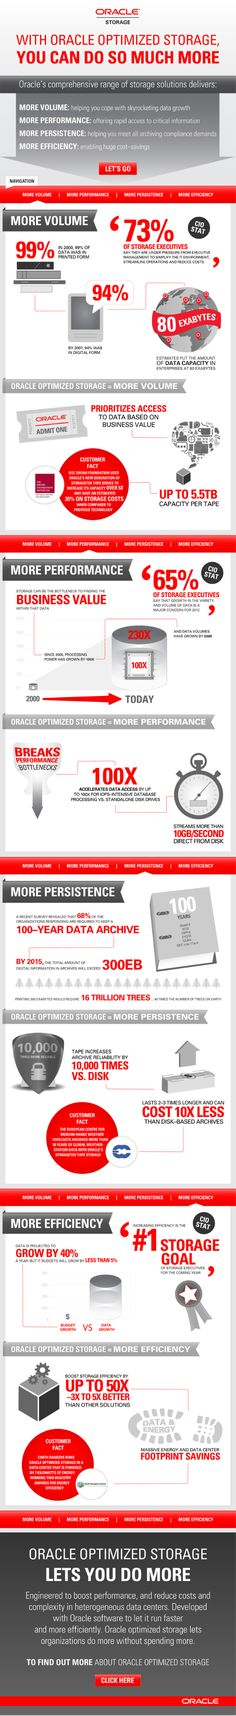 Oracle Optimized Storage = More Volume.  More Performance.  More Persistence.  More Efficiency.